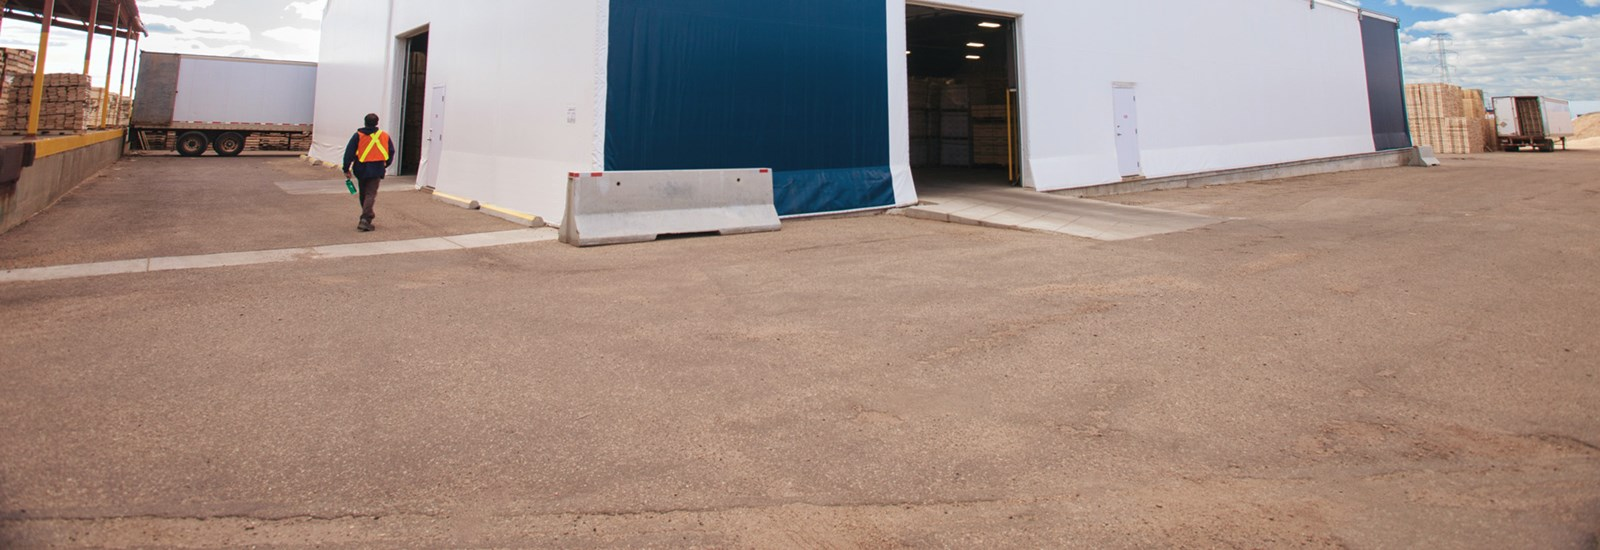 Warehouse for North Star Pallets   Norseman Structures